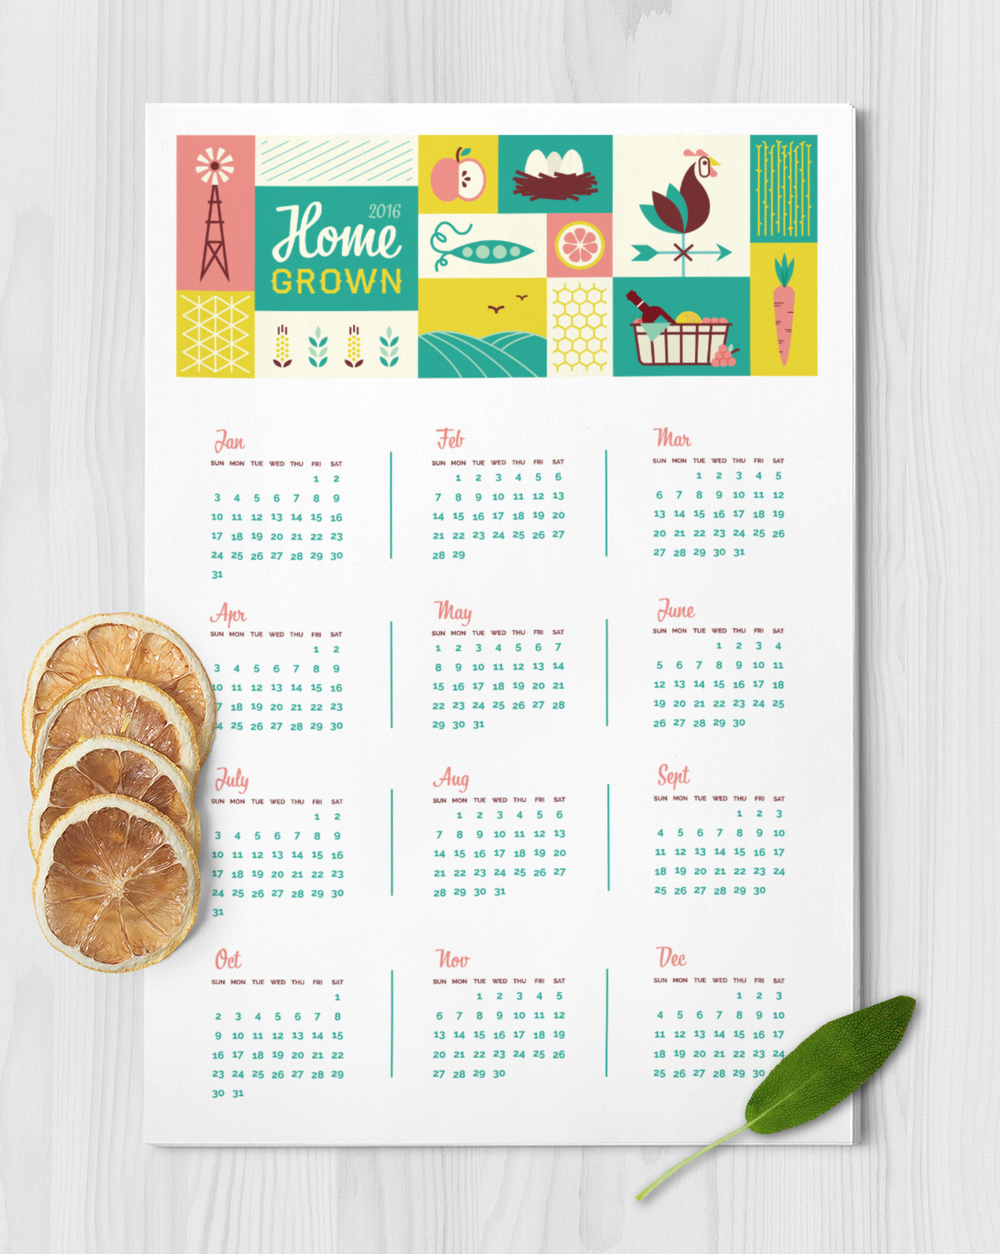 Home Grown 2016 calendar